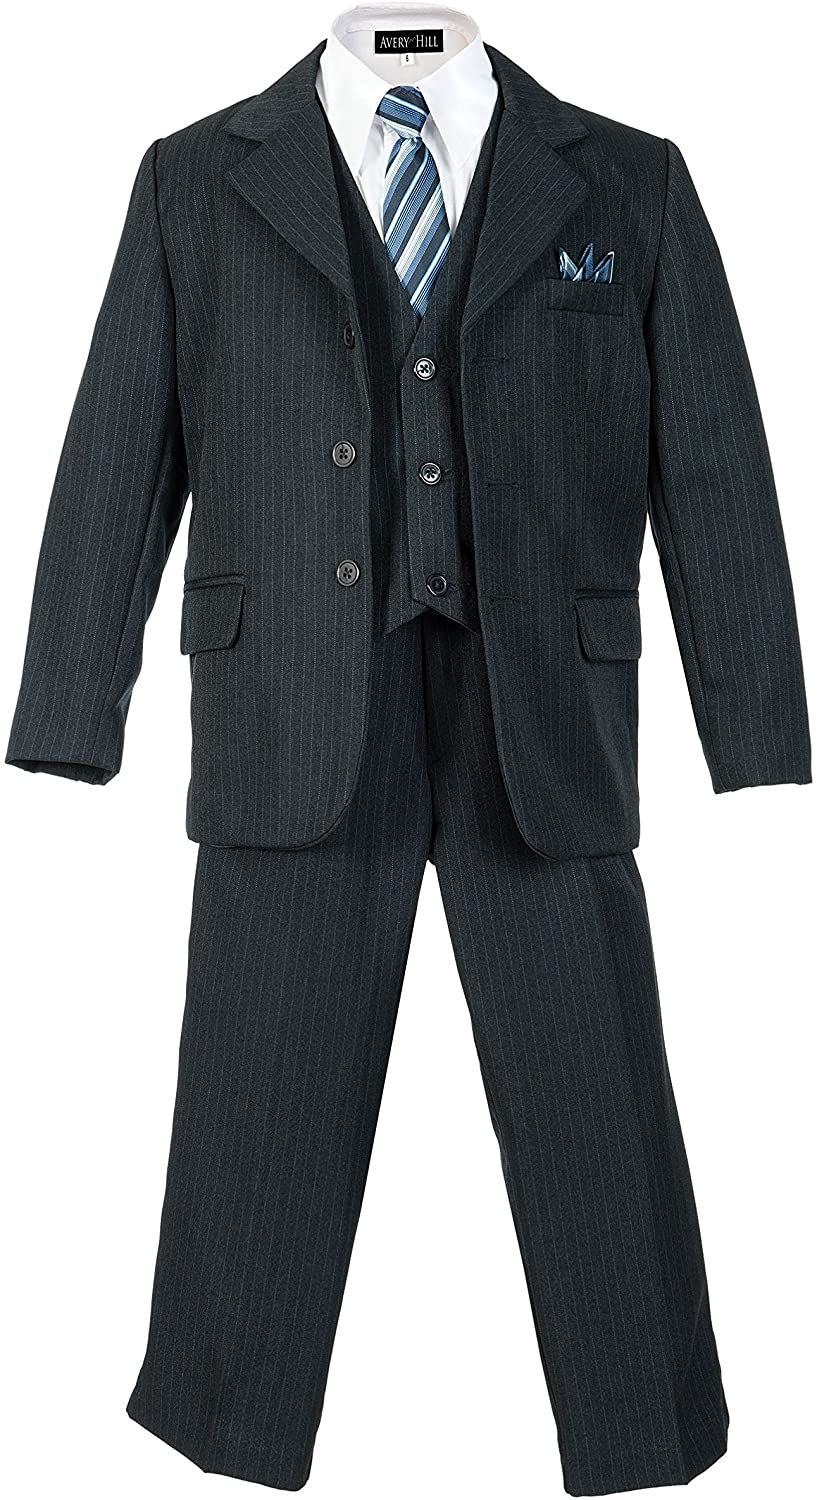 1930s Children's Fashion: Girls, Boys, Toddler, Baby Costumes Boys Pinstripe Suit Set with Matching Tie Size 2T-20 $44.99 AT vintagedancer.com